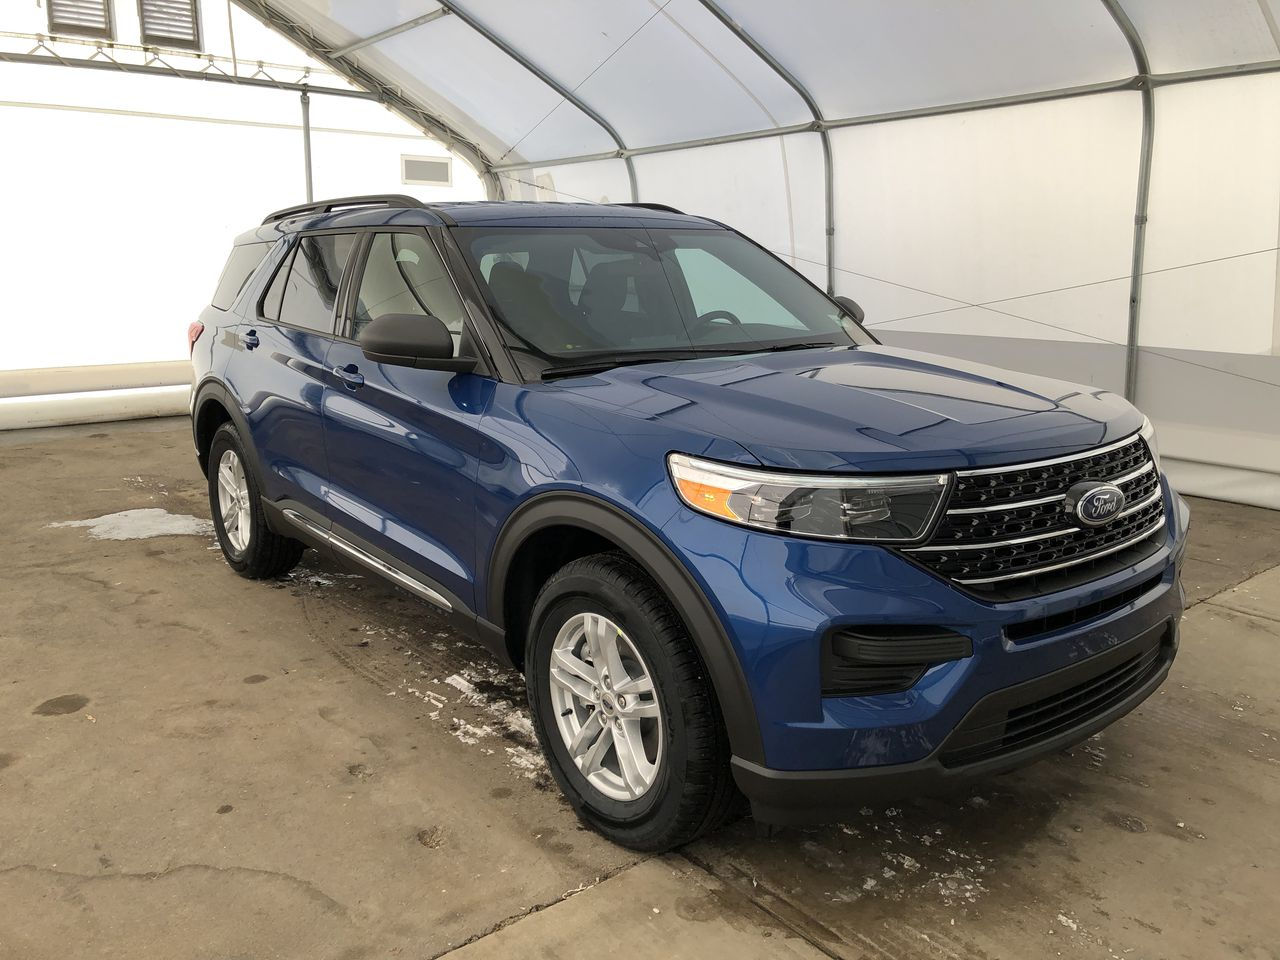 2020 Ford Explorer XLT (0N6641) Main Image